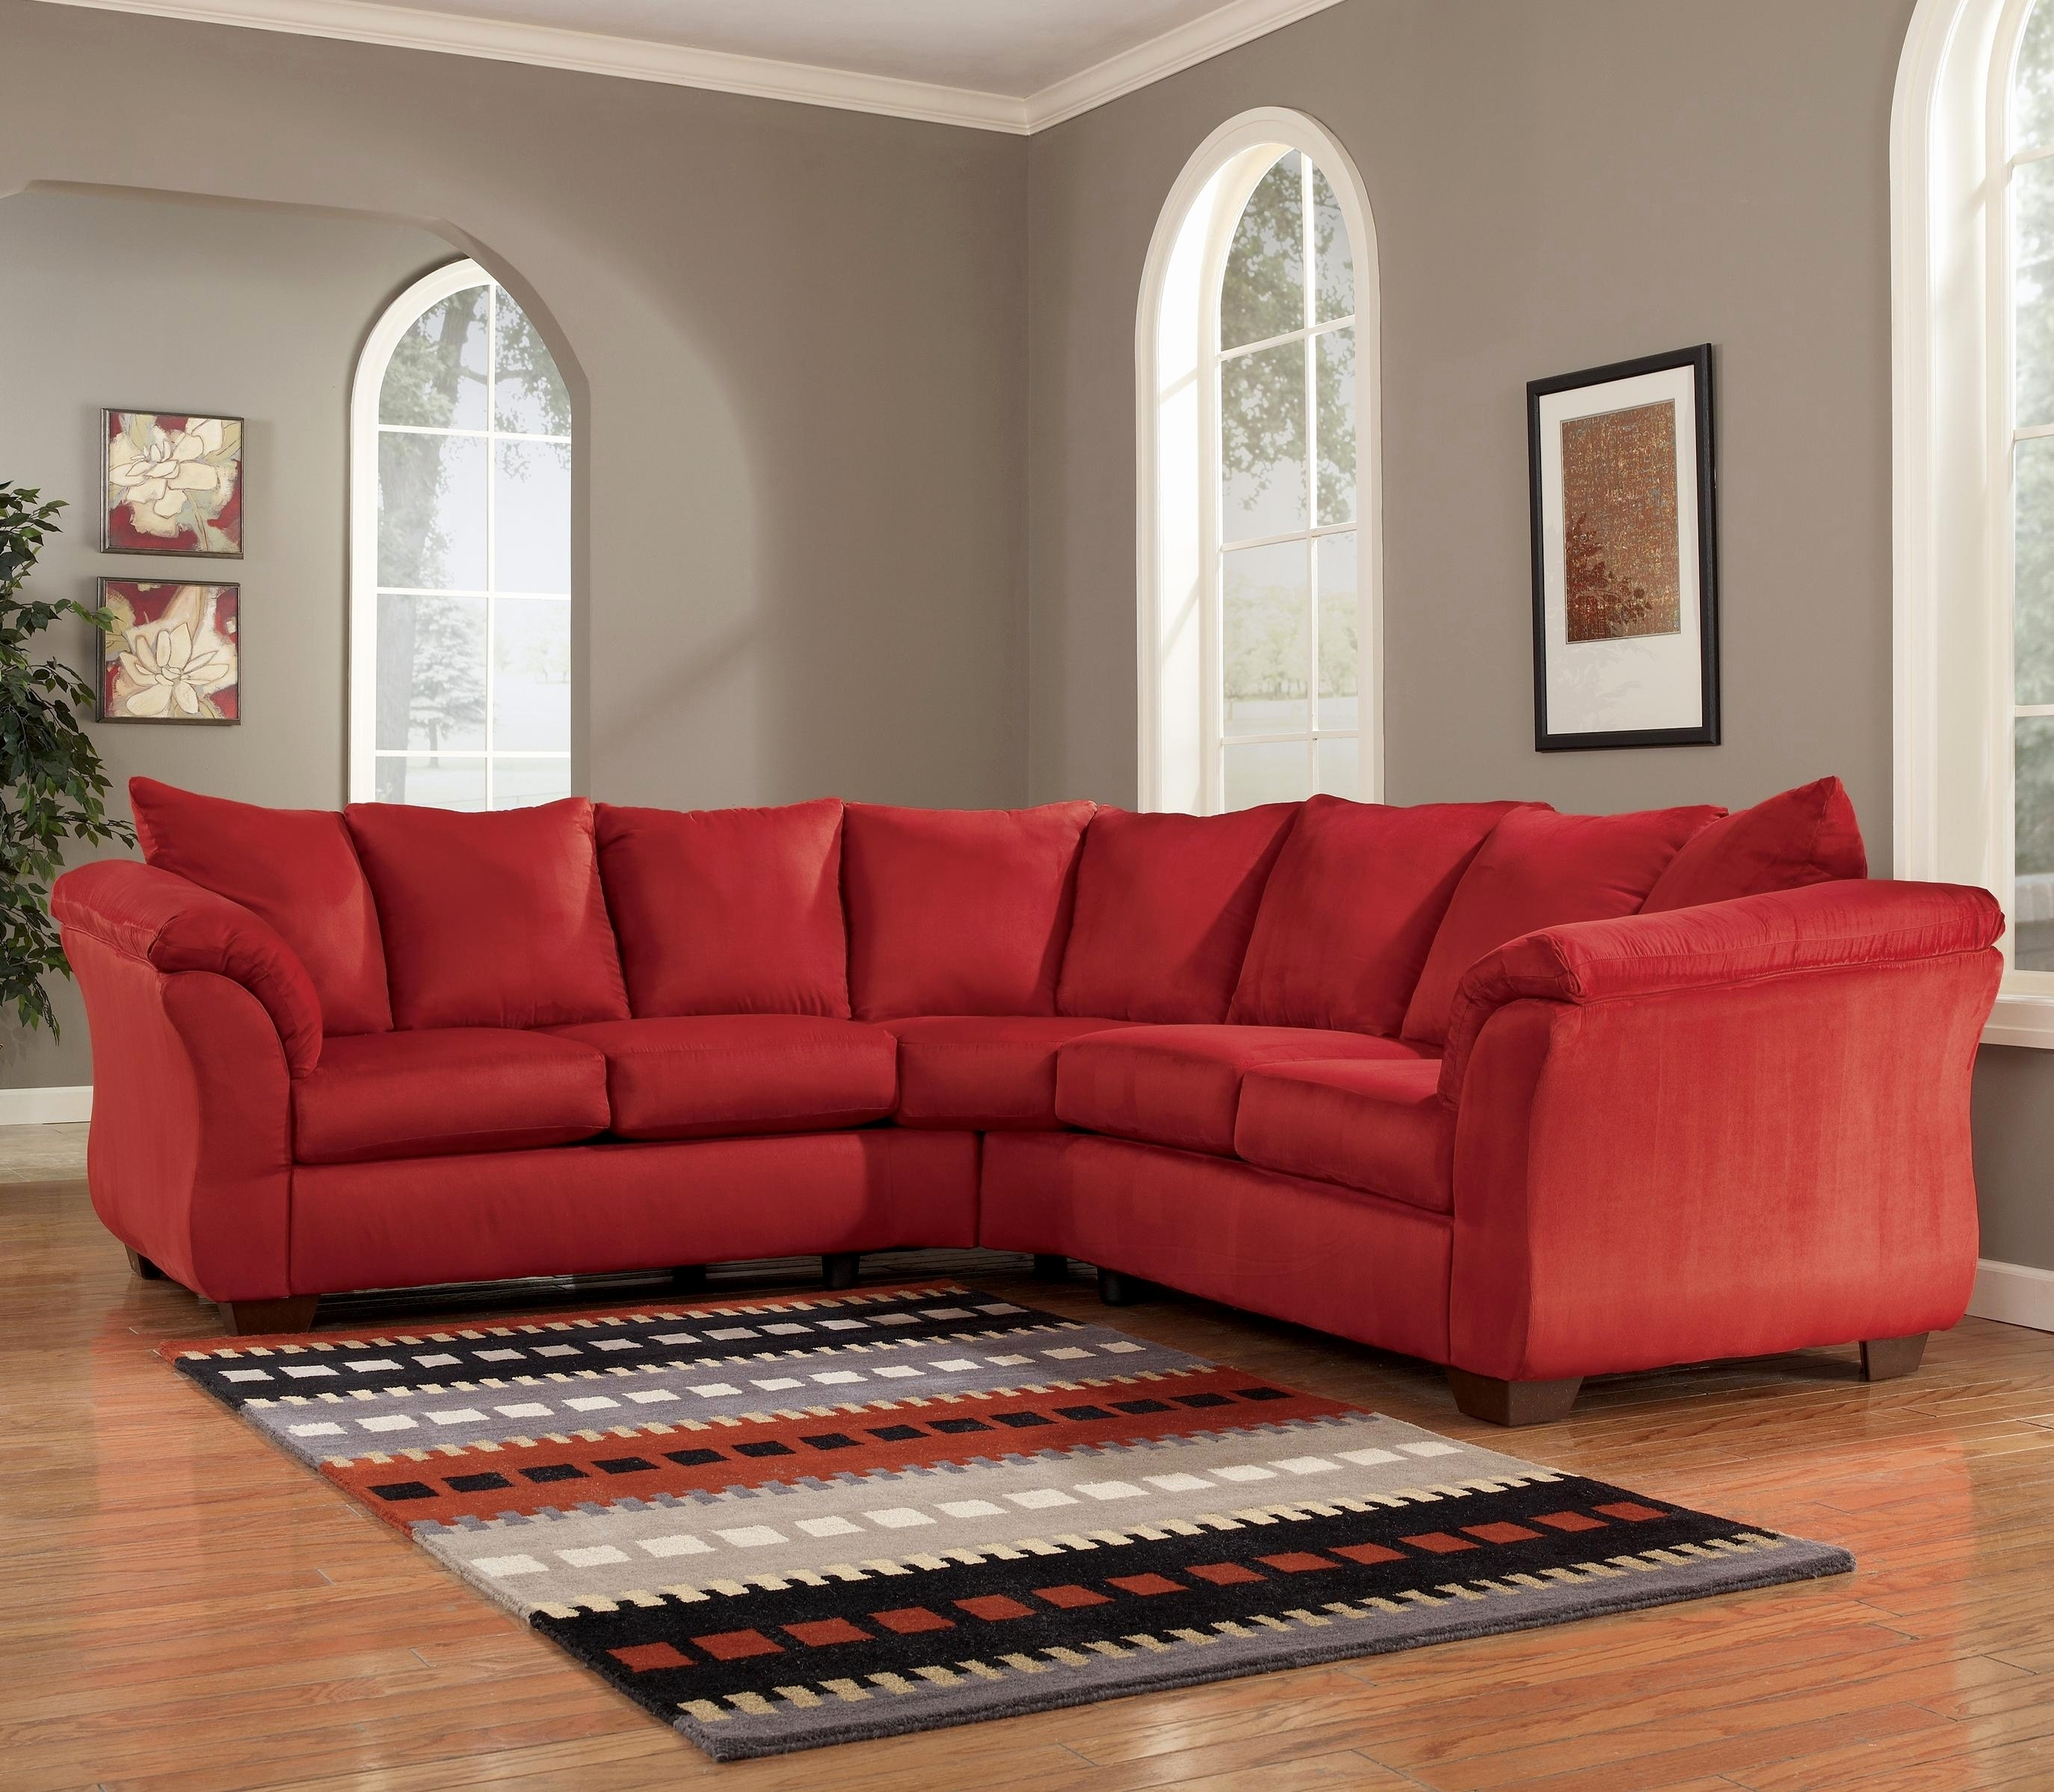 Living Room Furniture Dayton Oh Luxury Darcy Salsa Sectional Sofa within Dayton Ohio Sectional Sofas (Image 6 of 10)